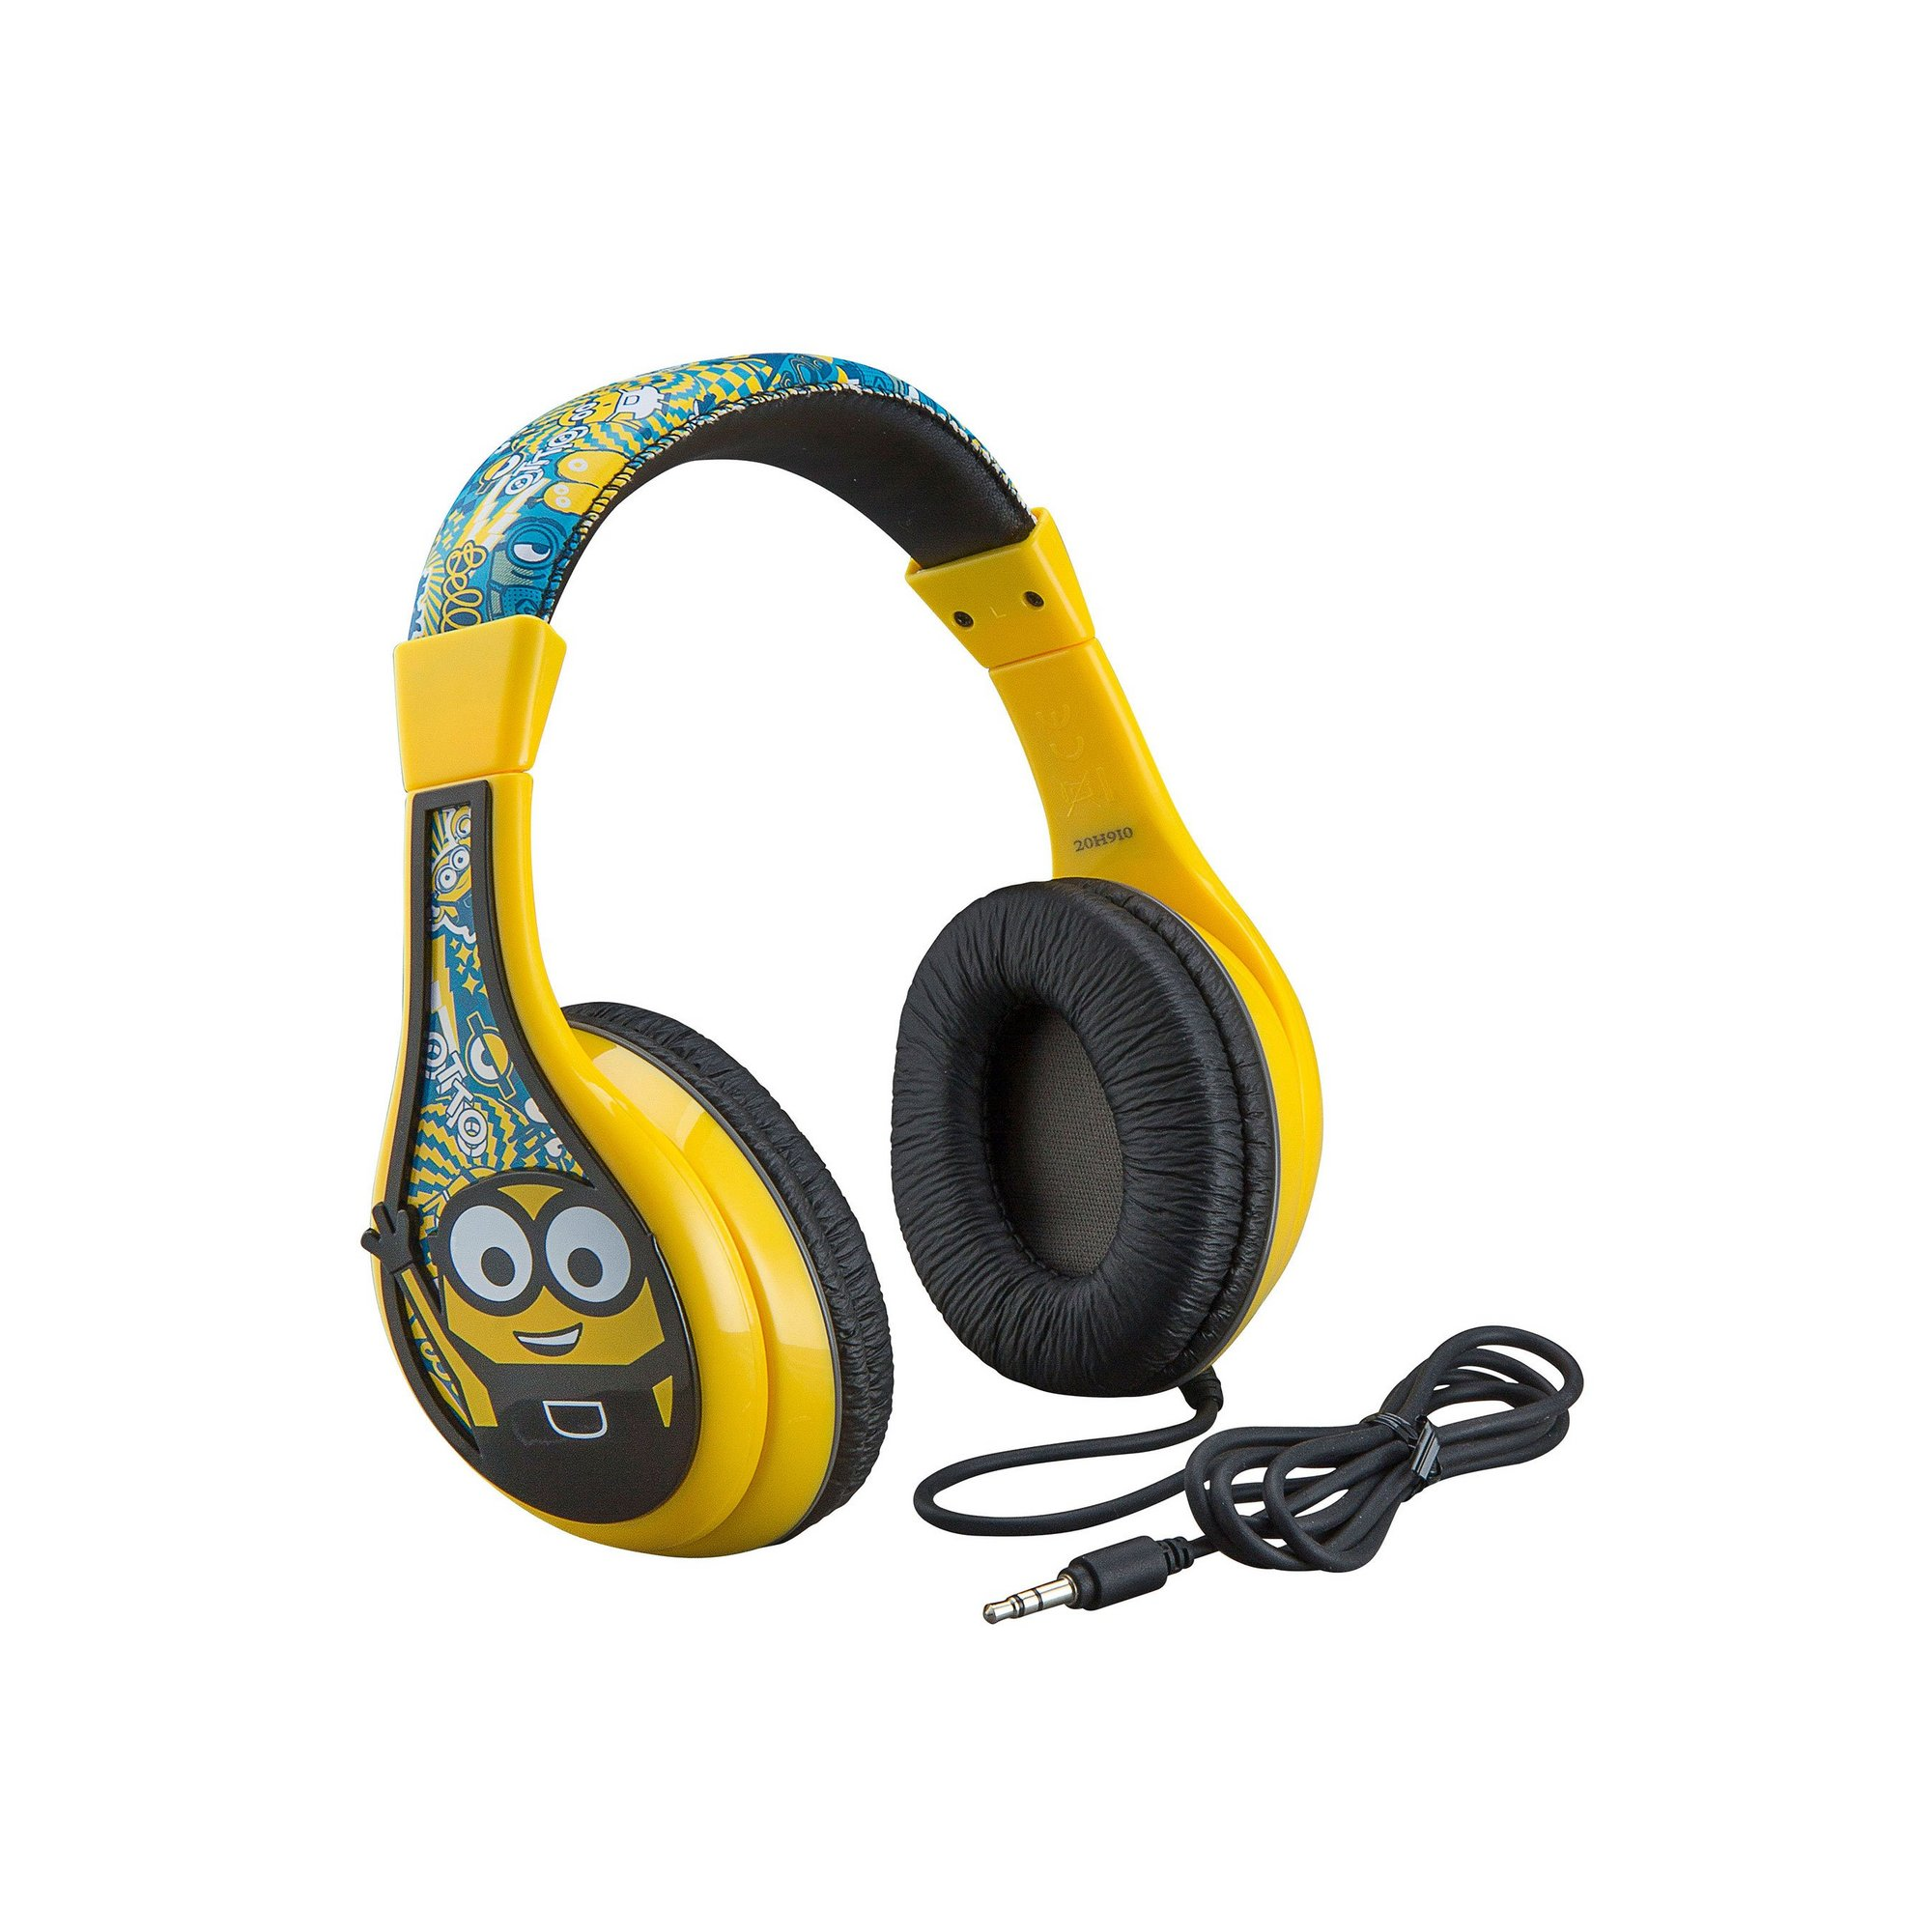 Image of Minions 2 Youth Headphones